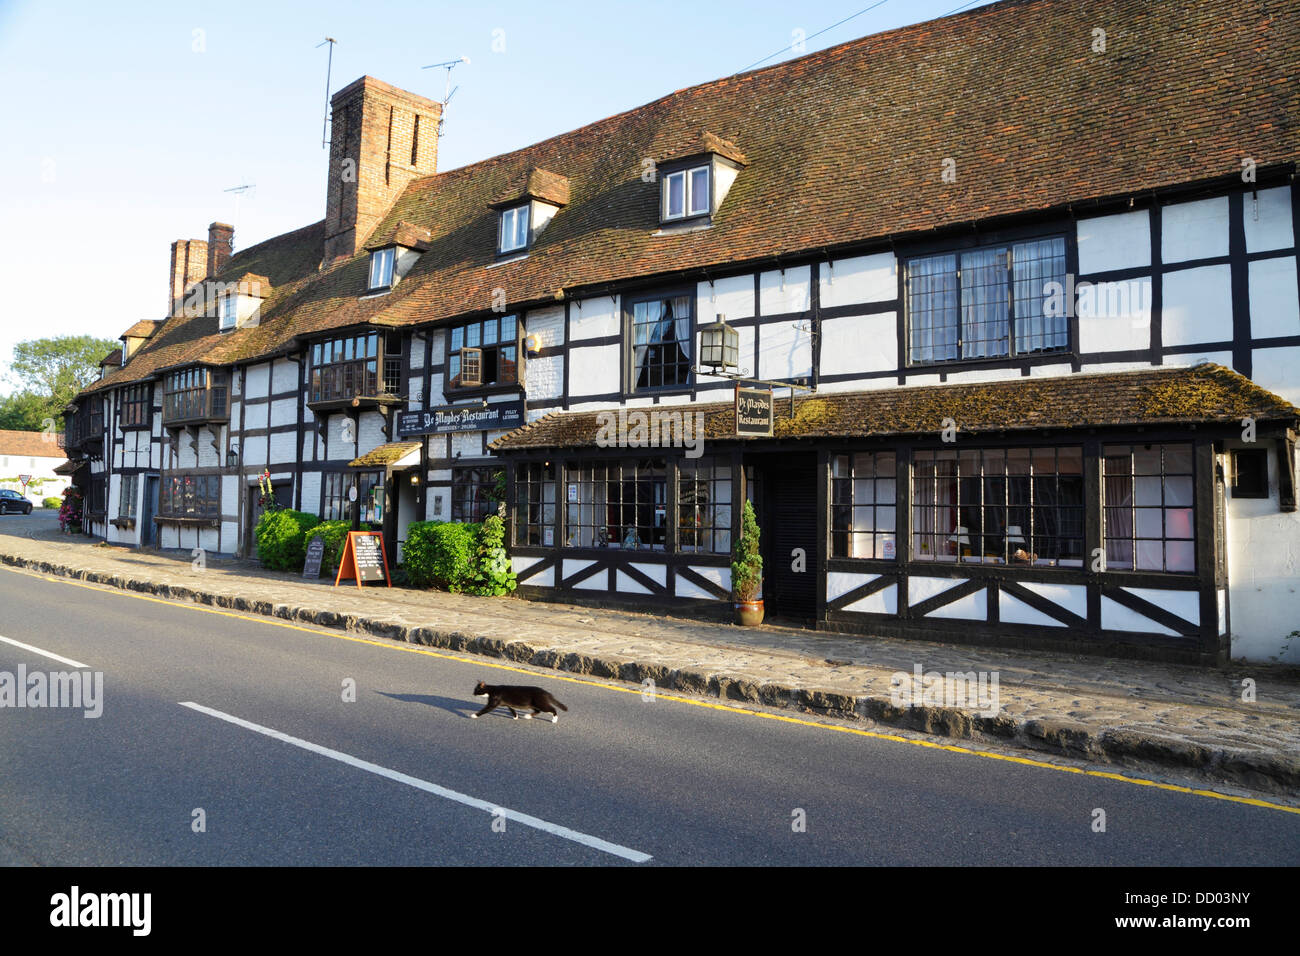 Black and white cat crossing road in front of medieval weavers' houses, Maydes Restaurant, Biddenden, Kent, England, Stock Photo